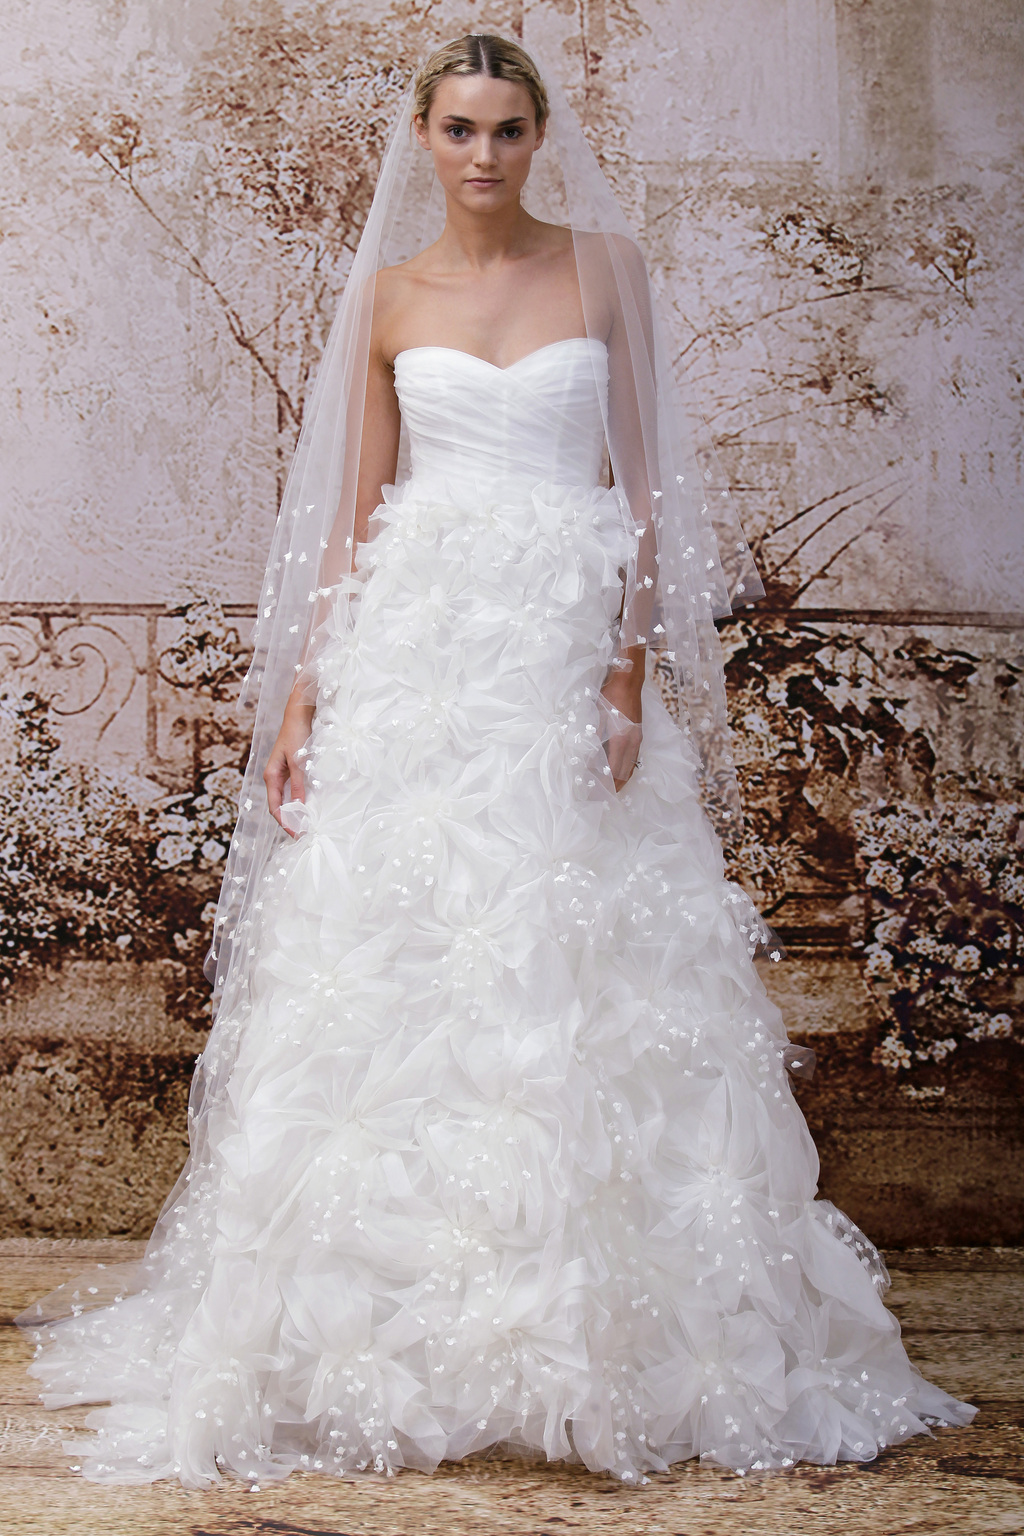 Petal-adorned-wedding-veil-coordinating-with-the-monique-lhuillier-dress.full